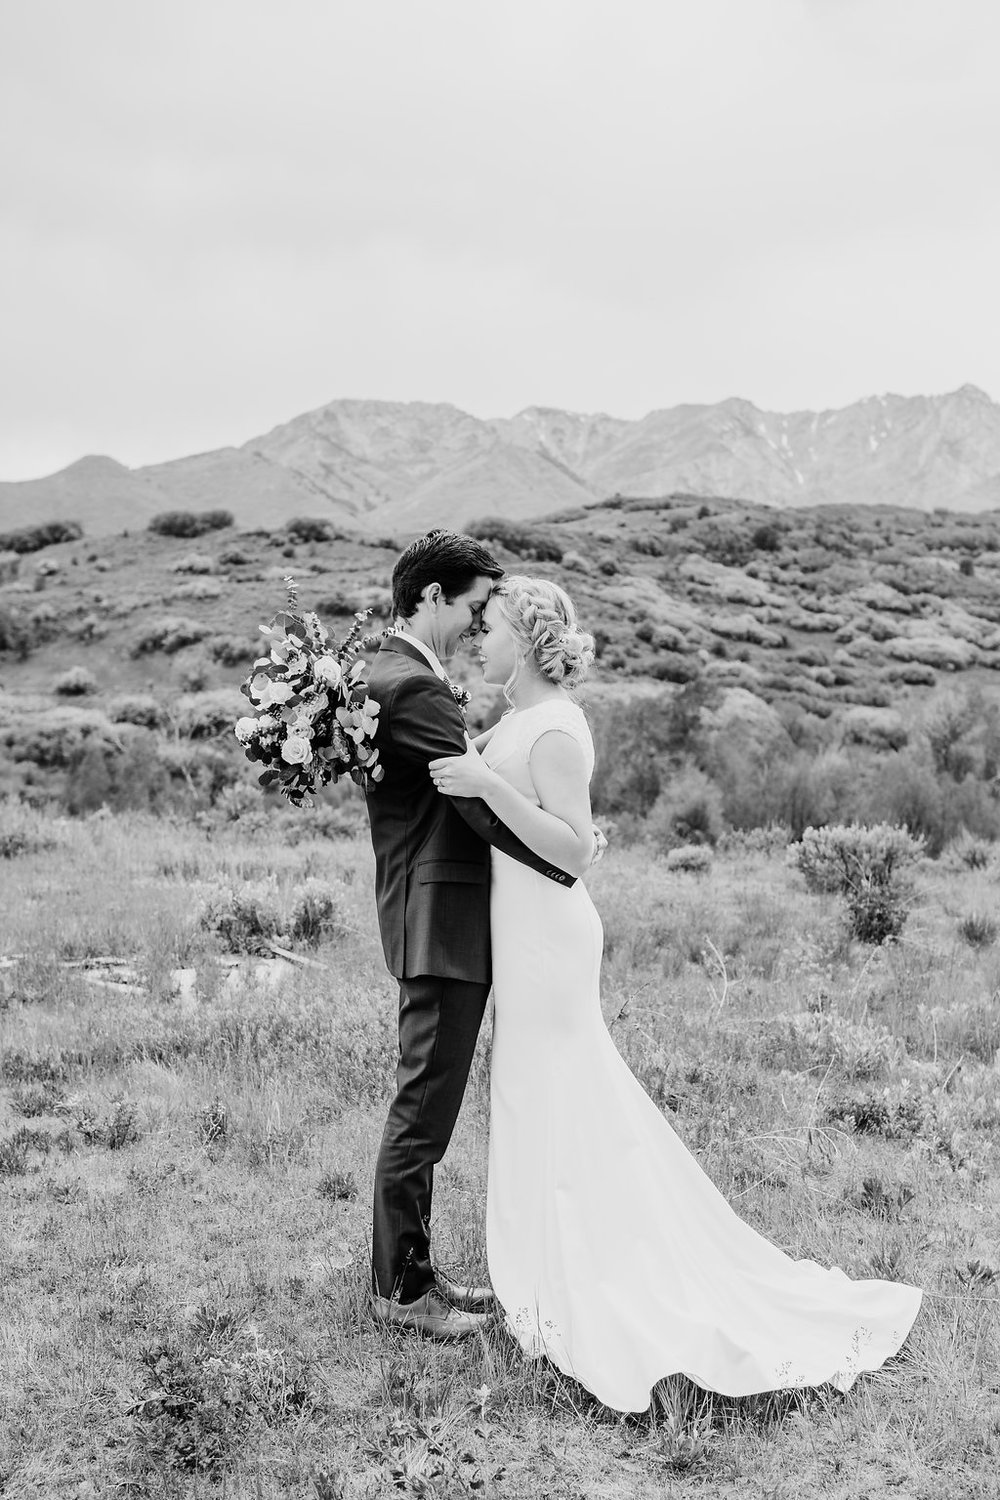 formals wedding photography in cache valley utah by calli richards professional formals photographer